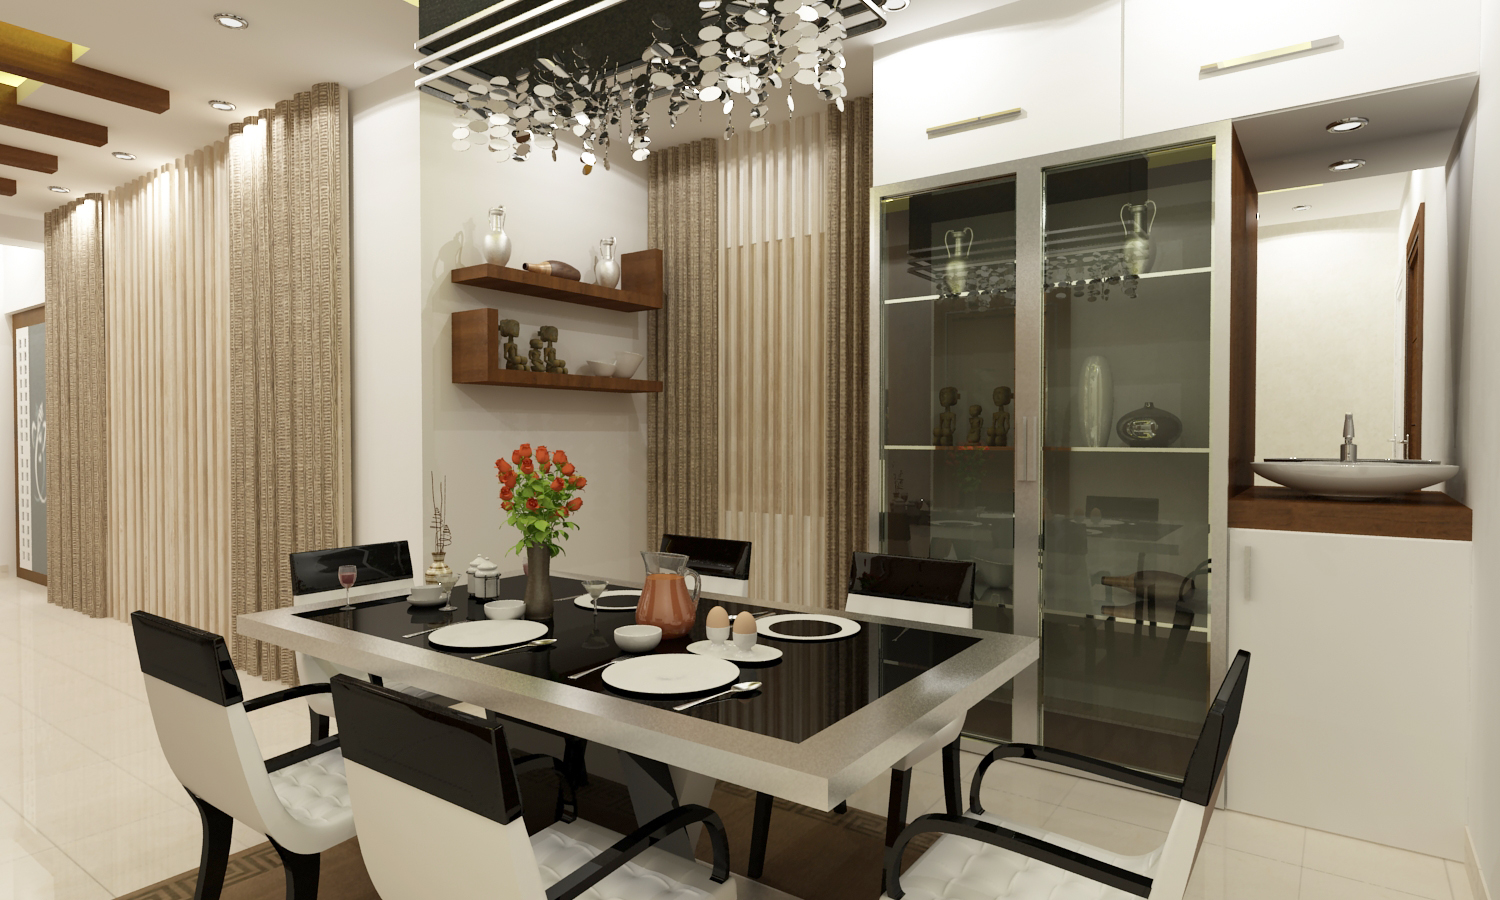 100 Home Furniture In Hyderabad India Interior Designs In Hyderabad Duplex House Villa